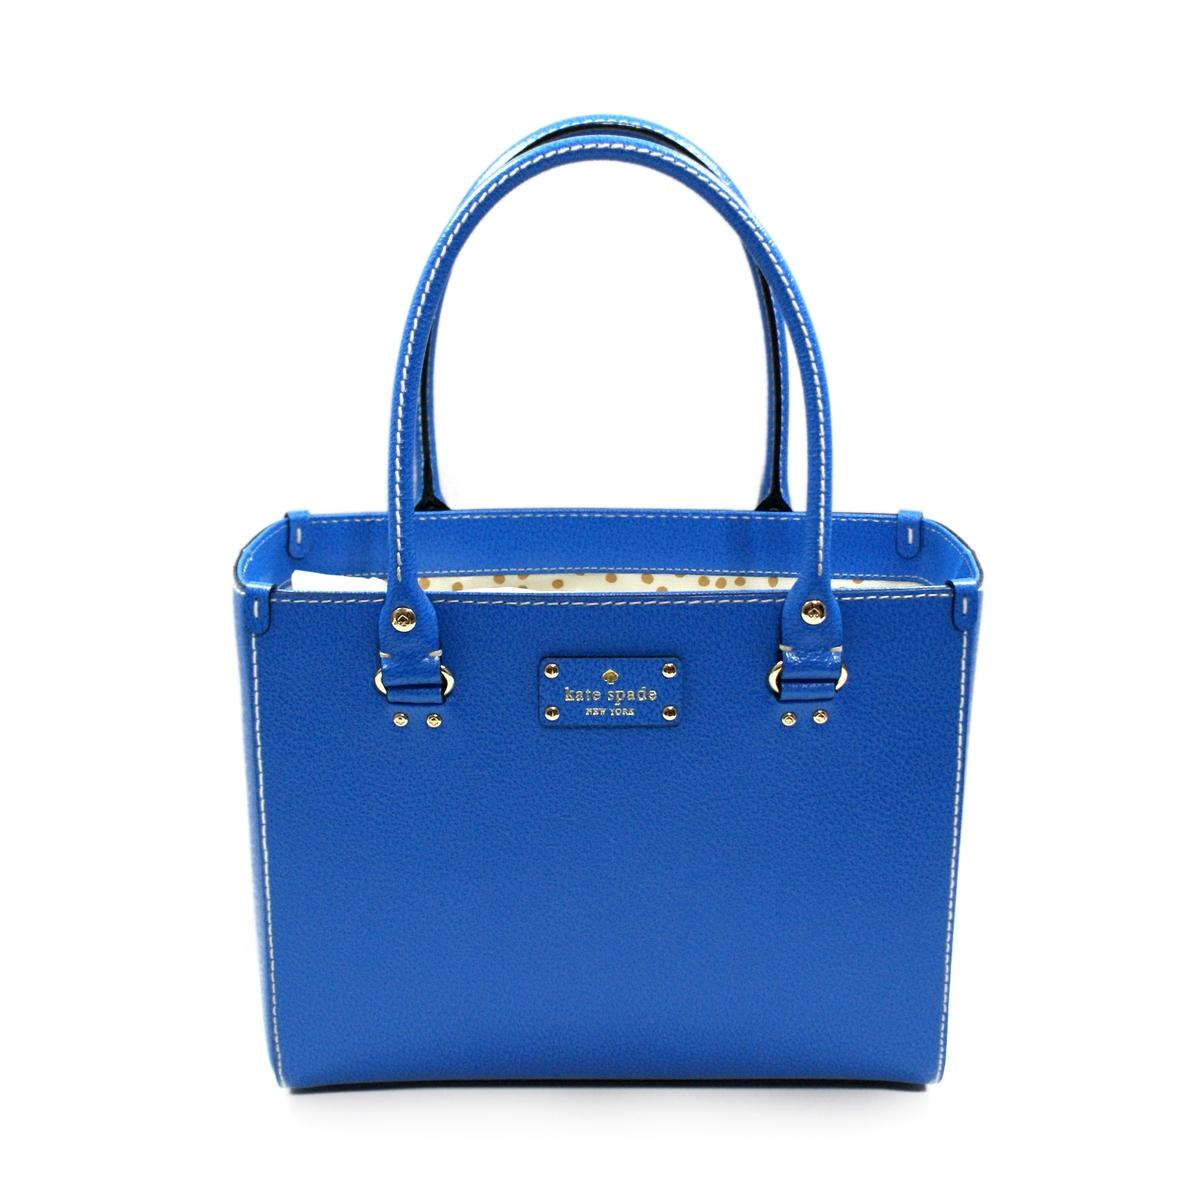 Home Kate Spade Quinn Wellesley Leather Satchel Handbag Omega Blue